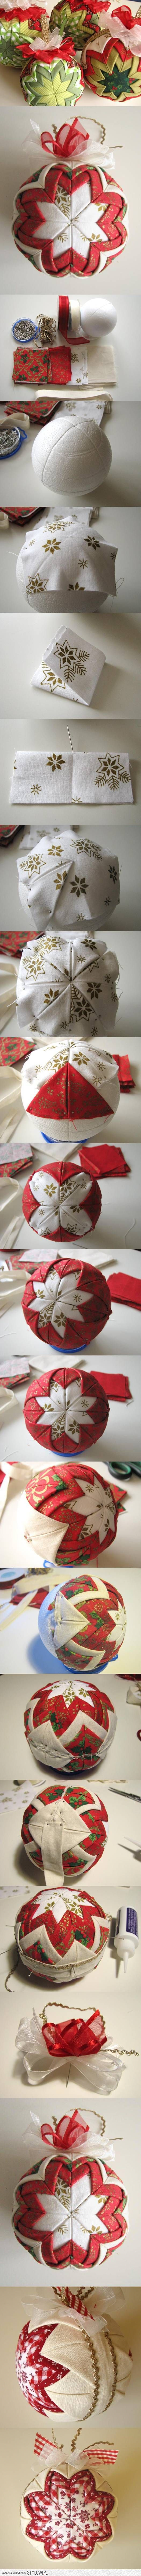 Diy Patchwork Ornament For Christmas